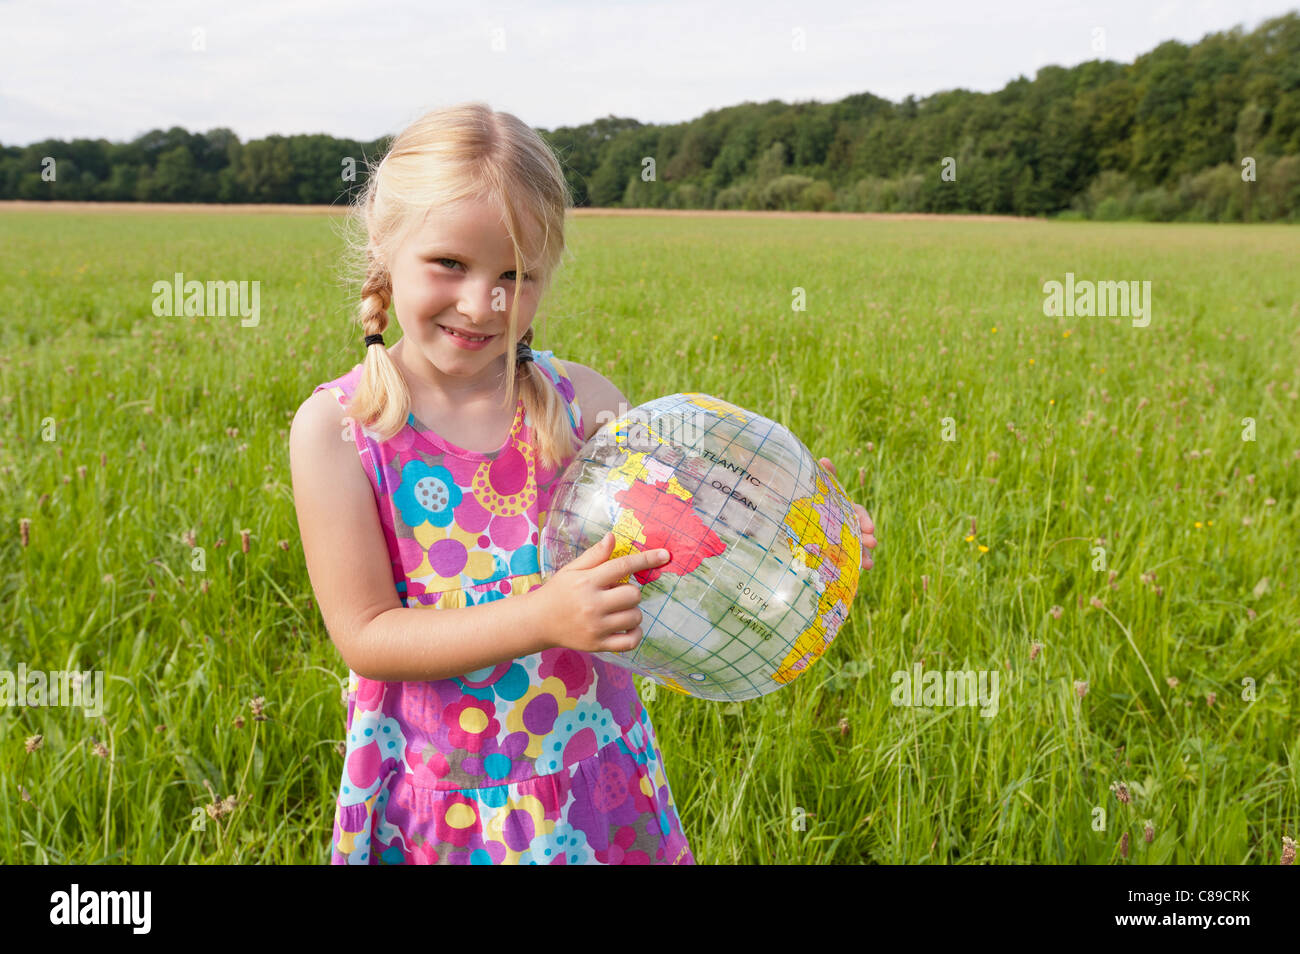 Germany, North Rhine-Westphalia, Hennef, Girl standing with beach ball globe in meadow Stock Photo